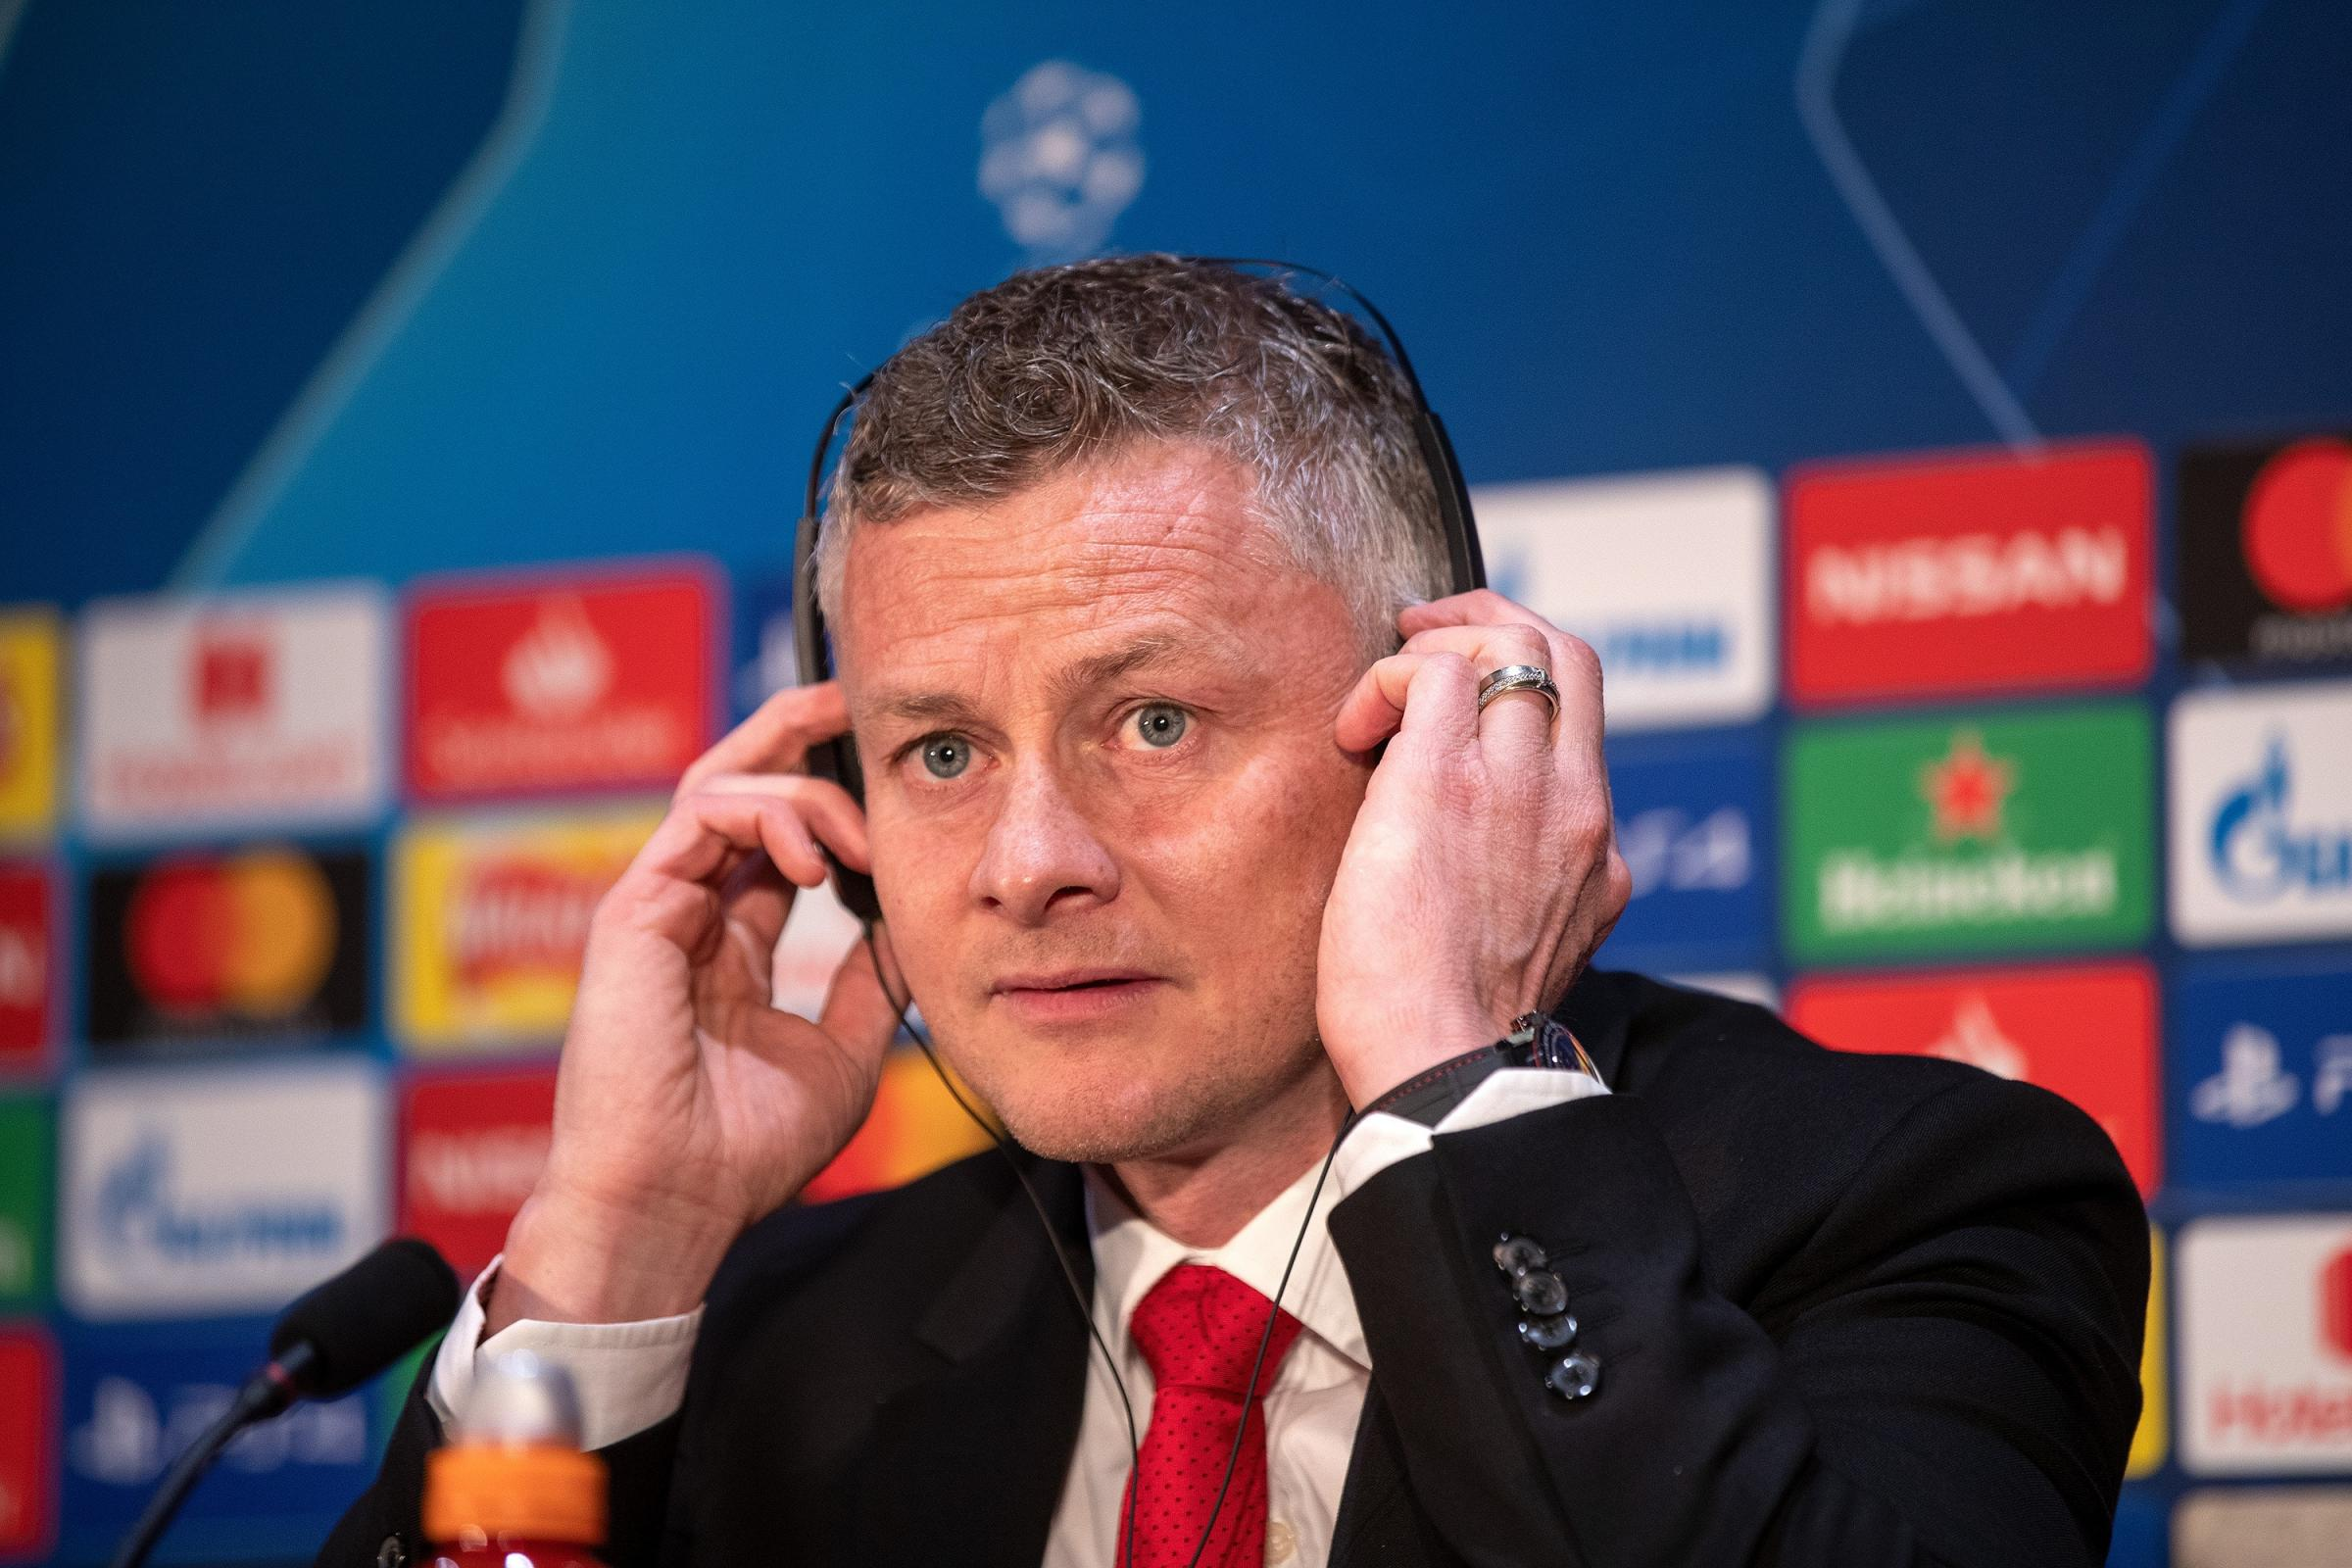 Ole Gunnar Solskjaer is demanding more from some of his players